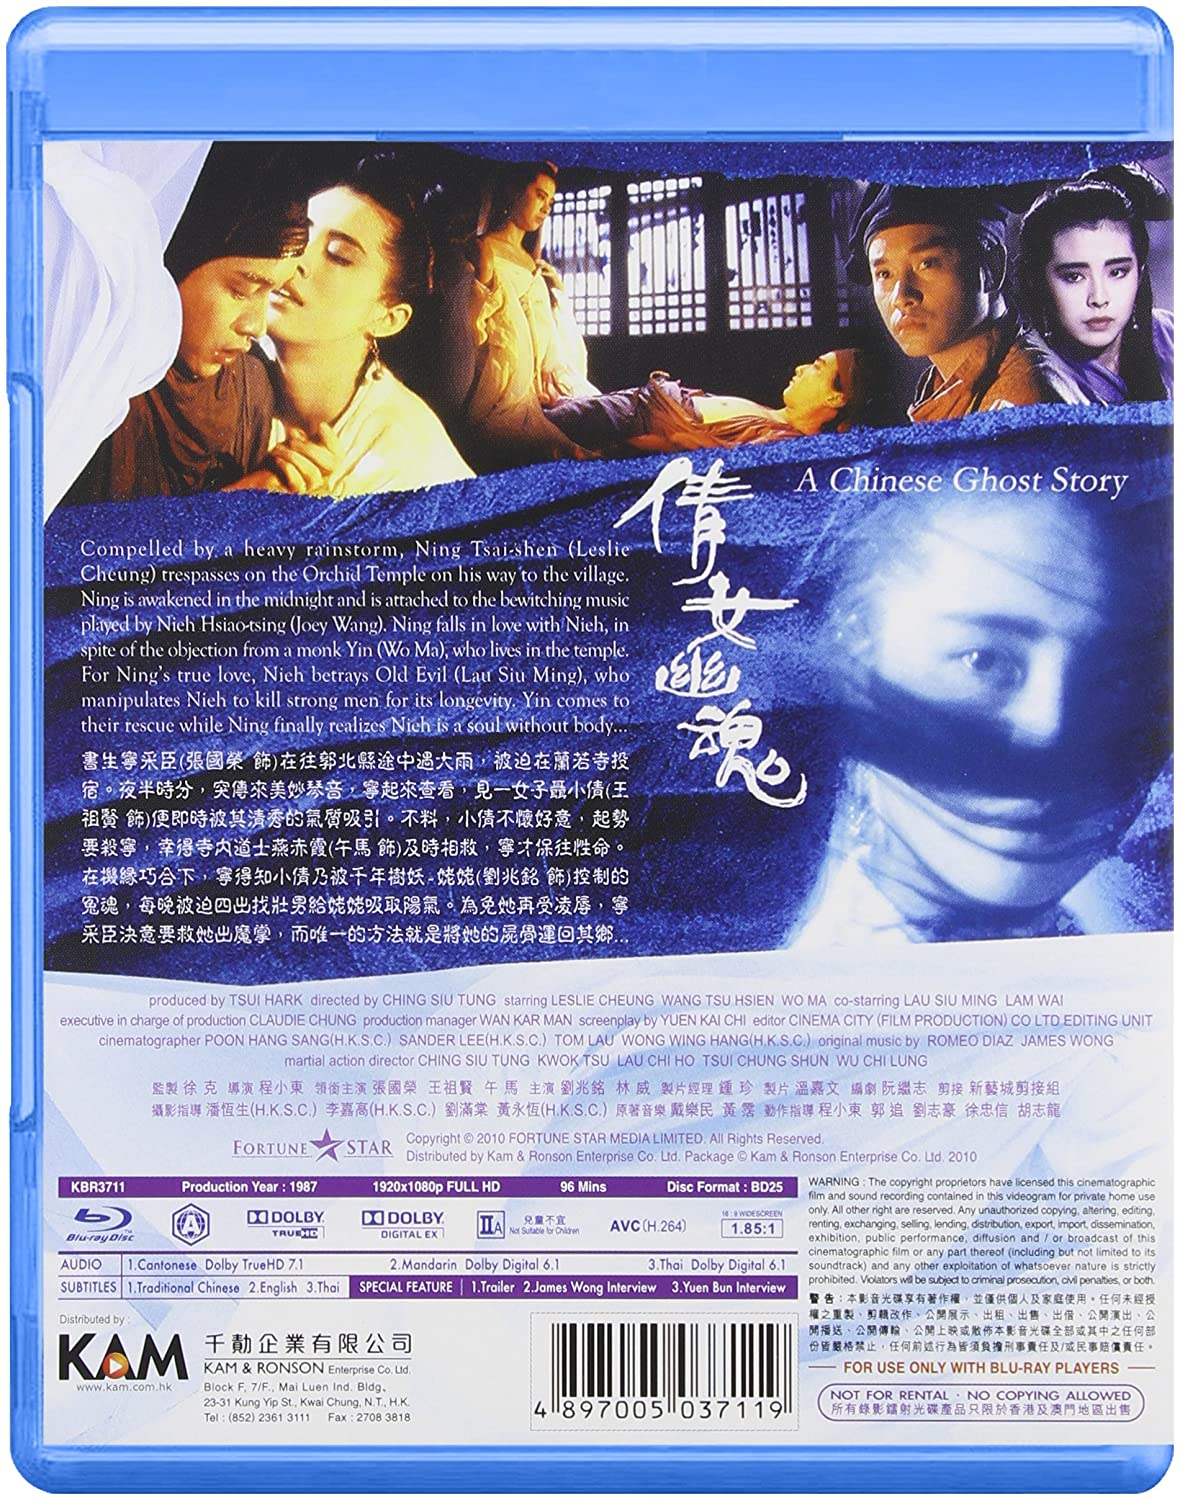 a chinese ghost story 2 full movie english subtitle